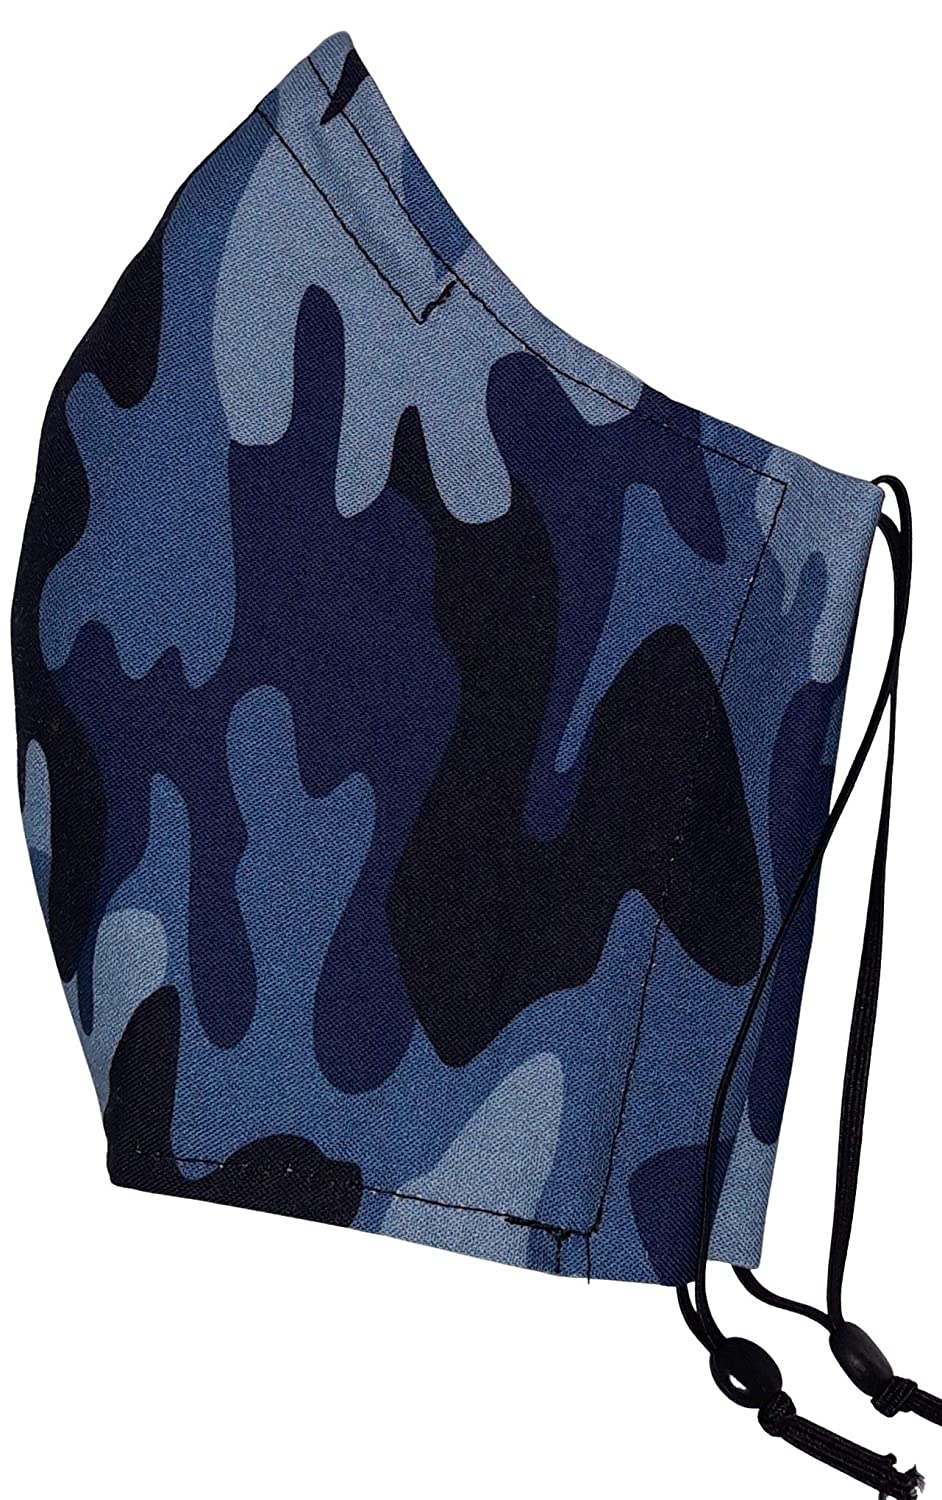 SMALL LADIES TEEN OFFer Size Face Mask- Fi Mask Camo- Cotton Blue Store